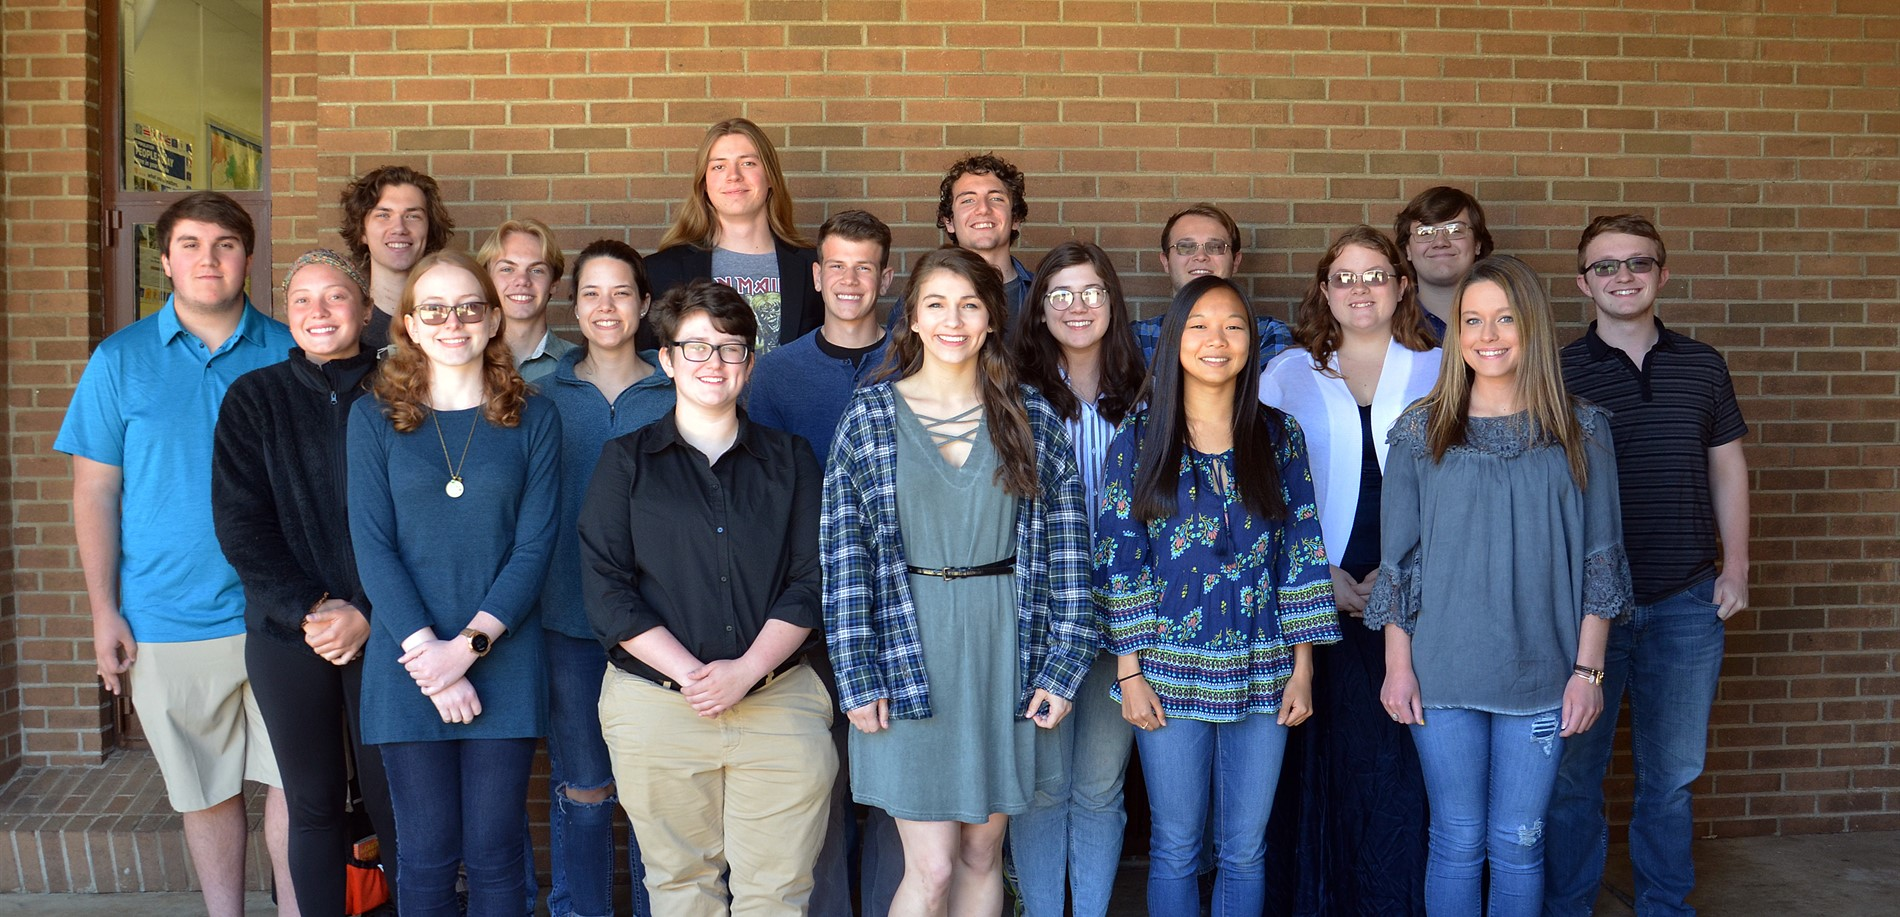 Group photo of 18 students that scored 30 or above on the ACT test.